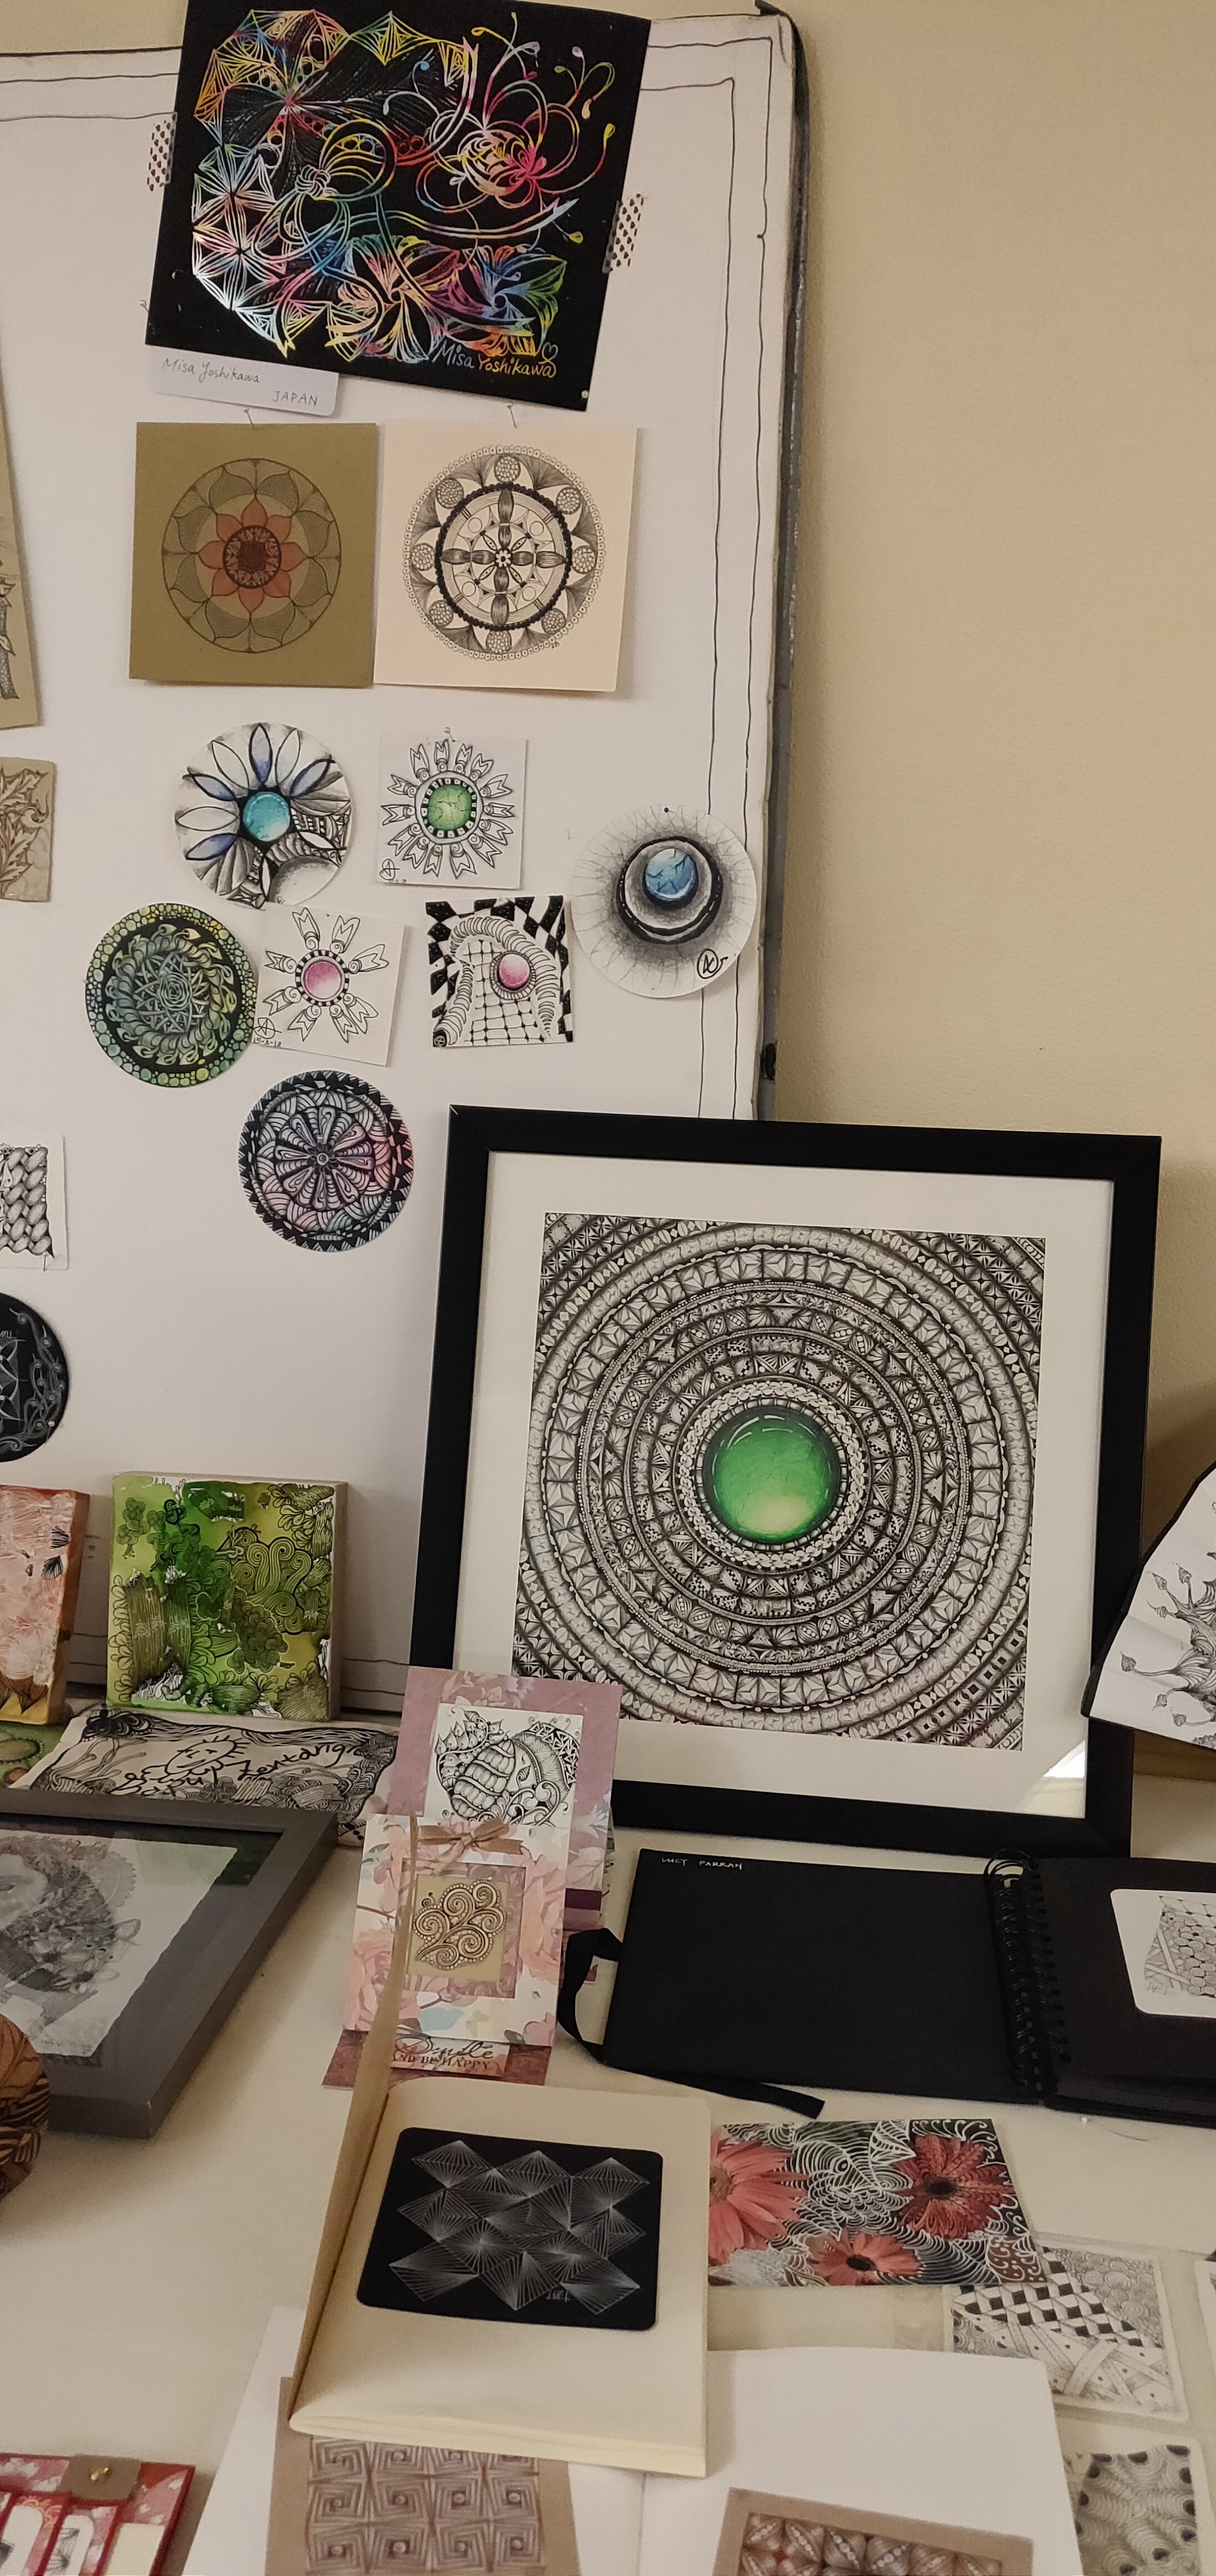 My Sold Artwork, Green ZenGem on the Display Section, at the Seminar